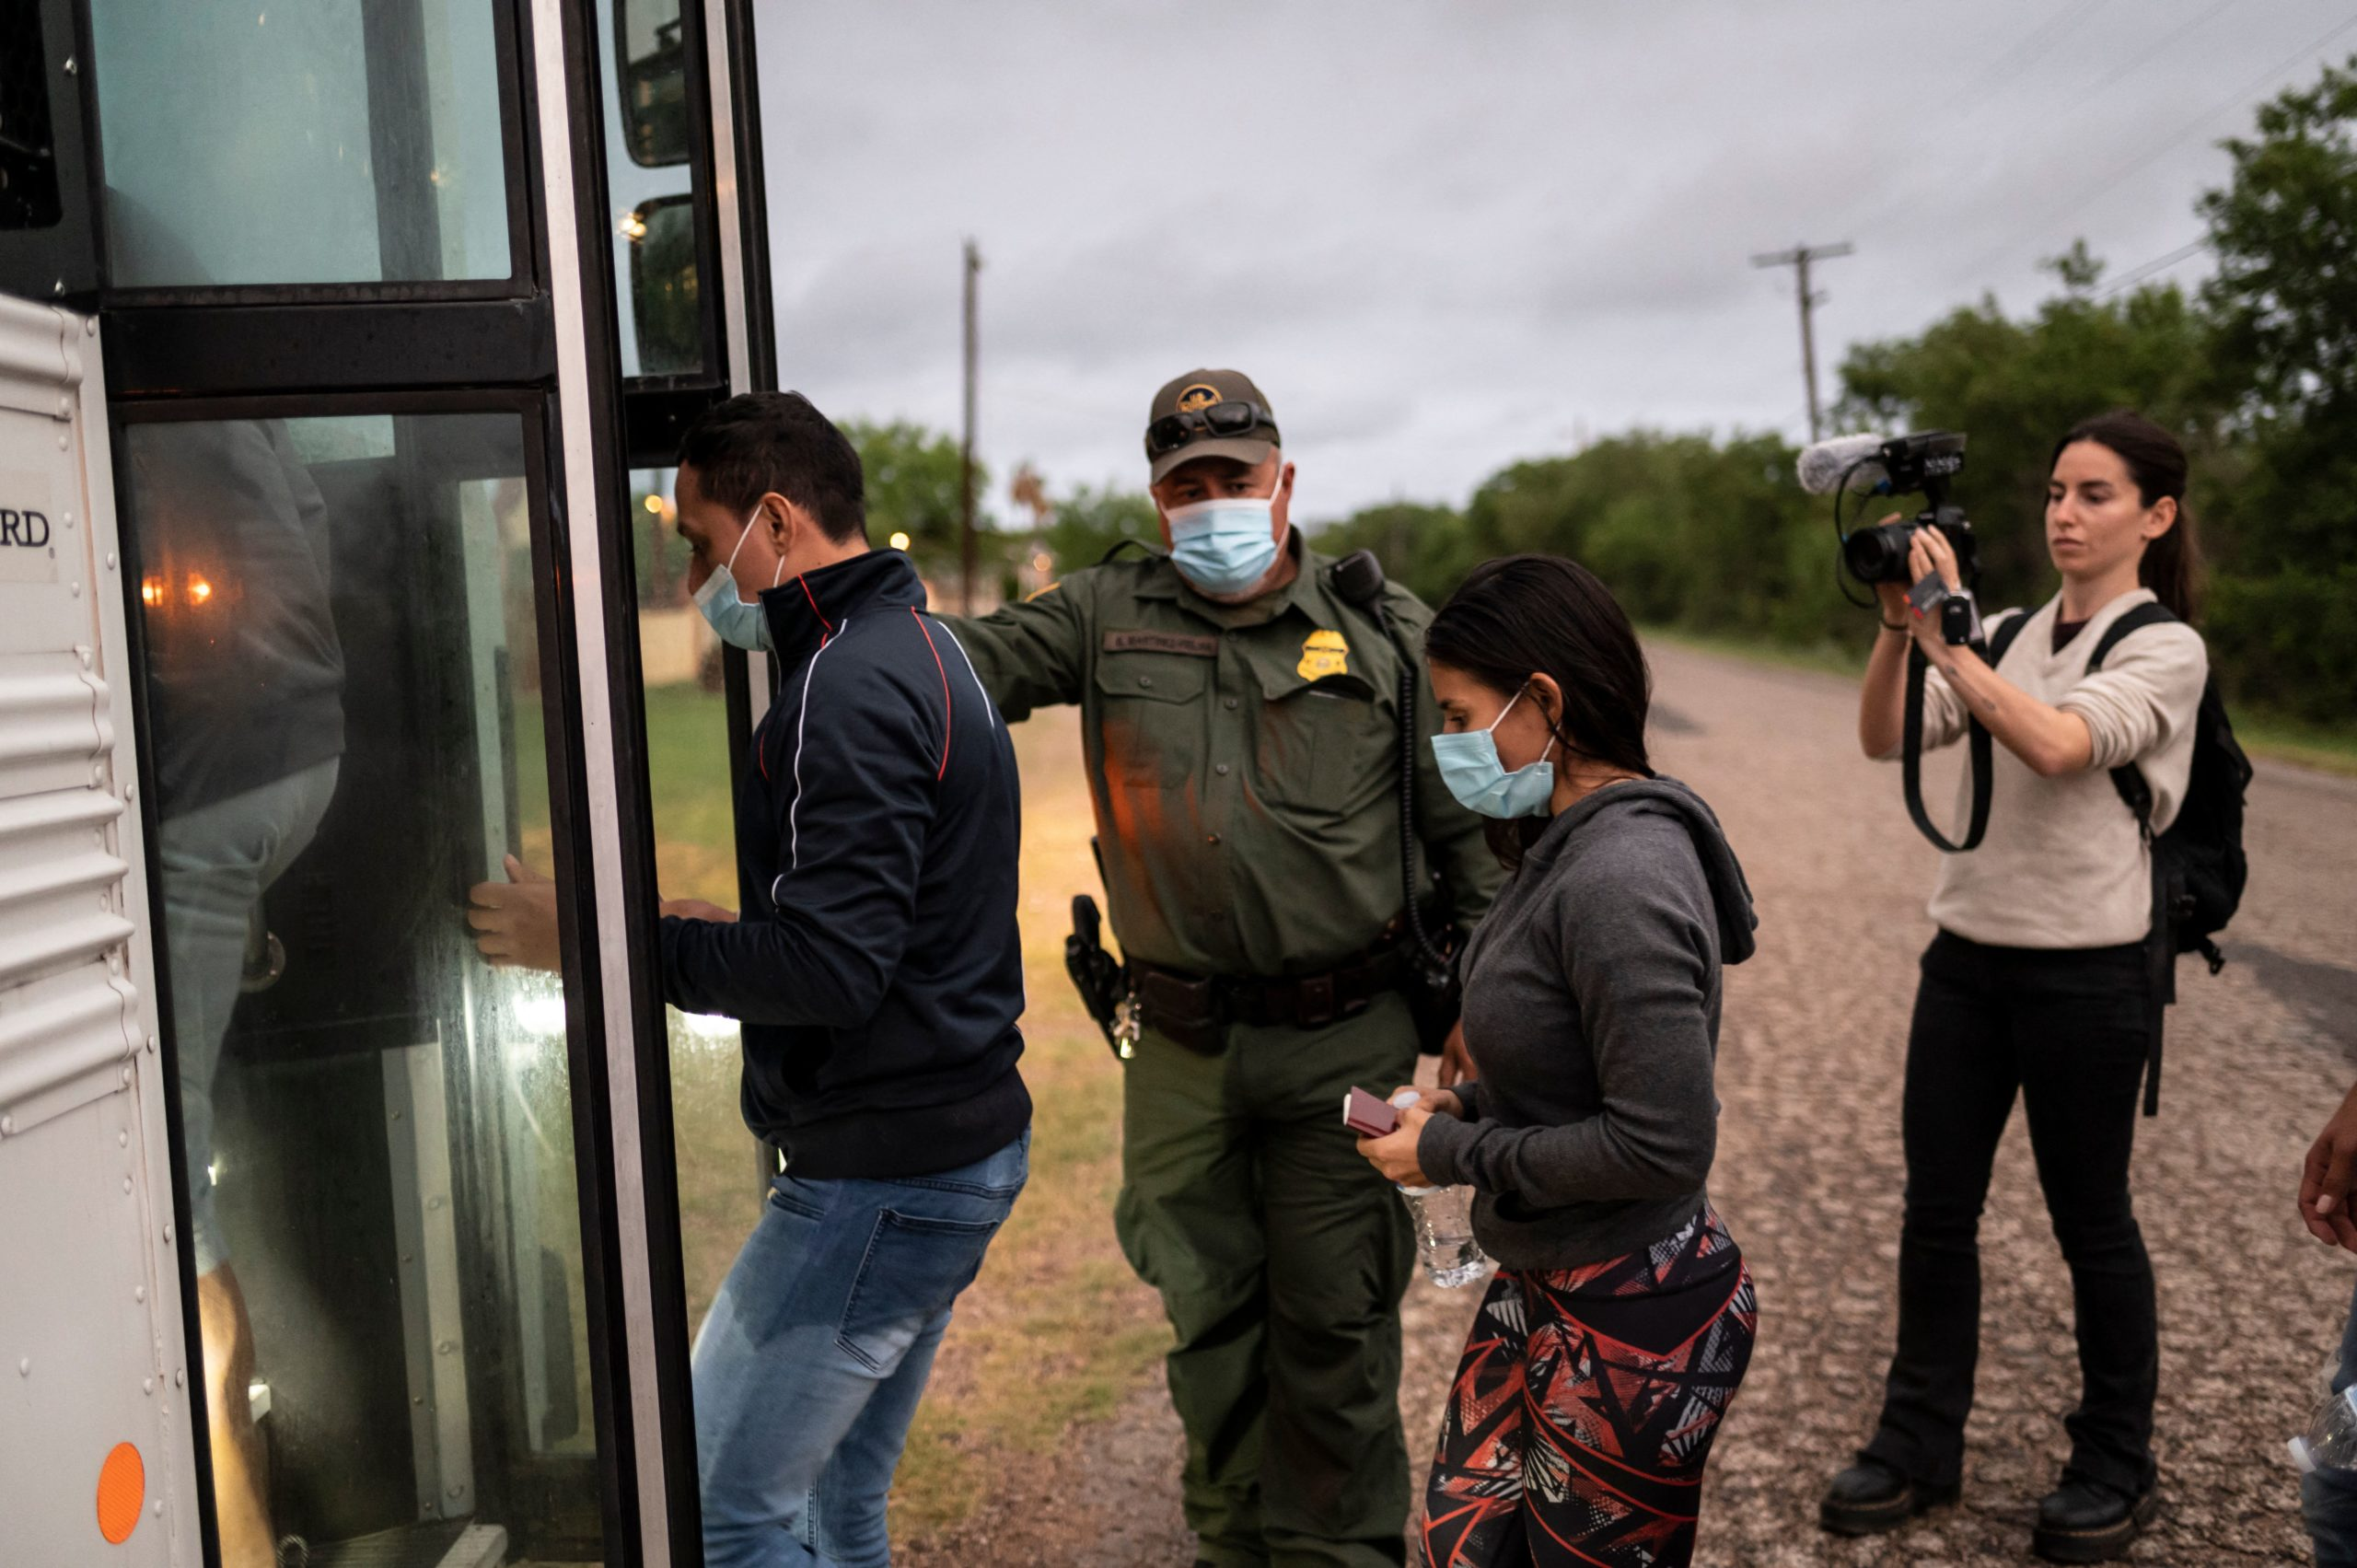 Migrants make their onto a bus after being apprehended near the border between Mexico and the United States in Del Rio, Texas on May 16, 2021. (Photo by SERGIO FLORES/AFP via Getty Images)